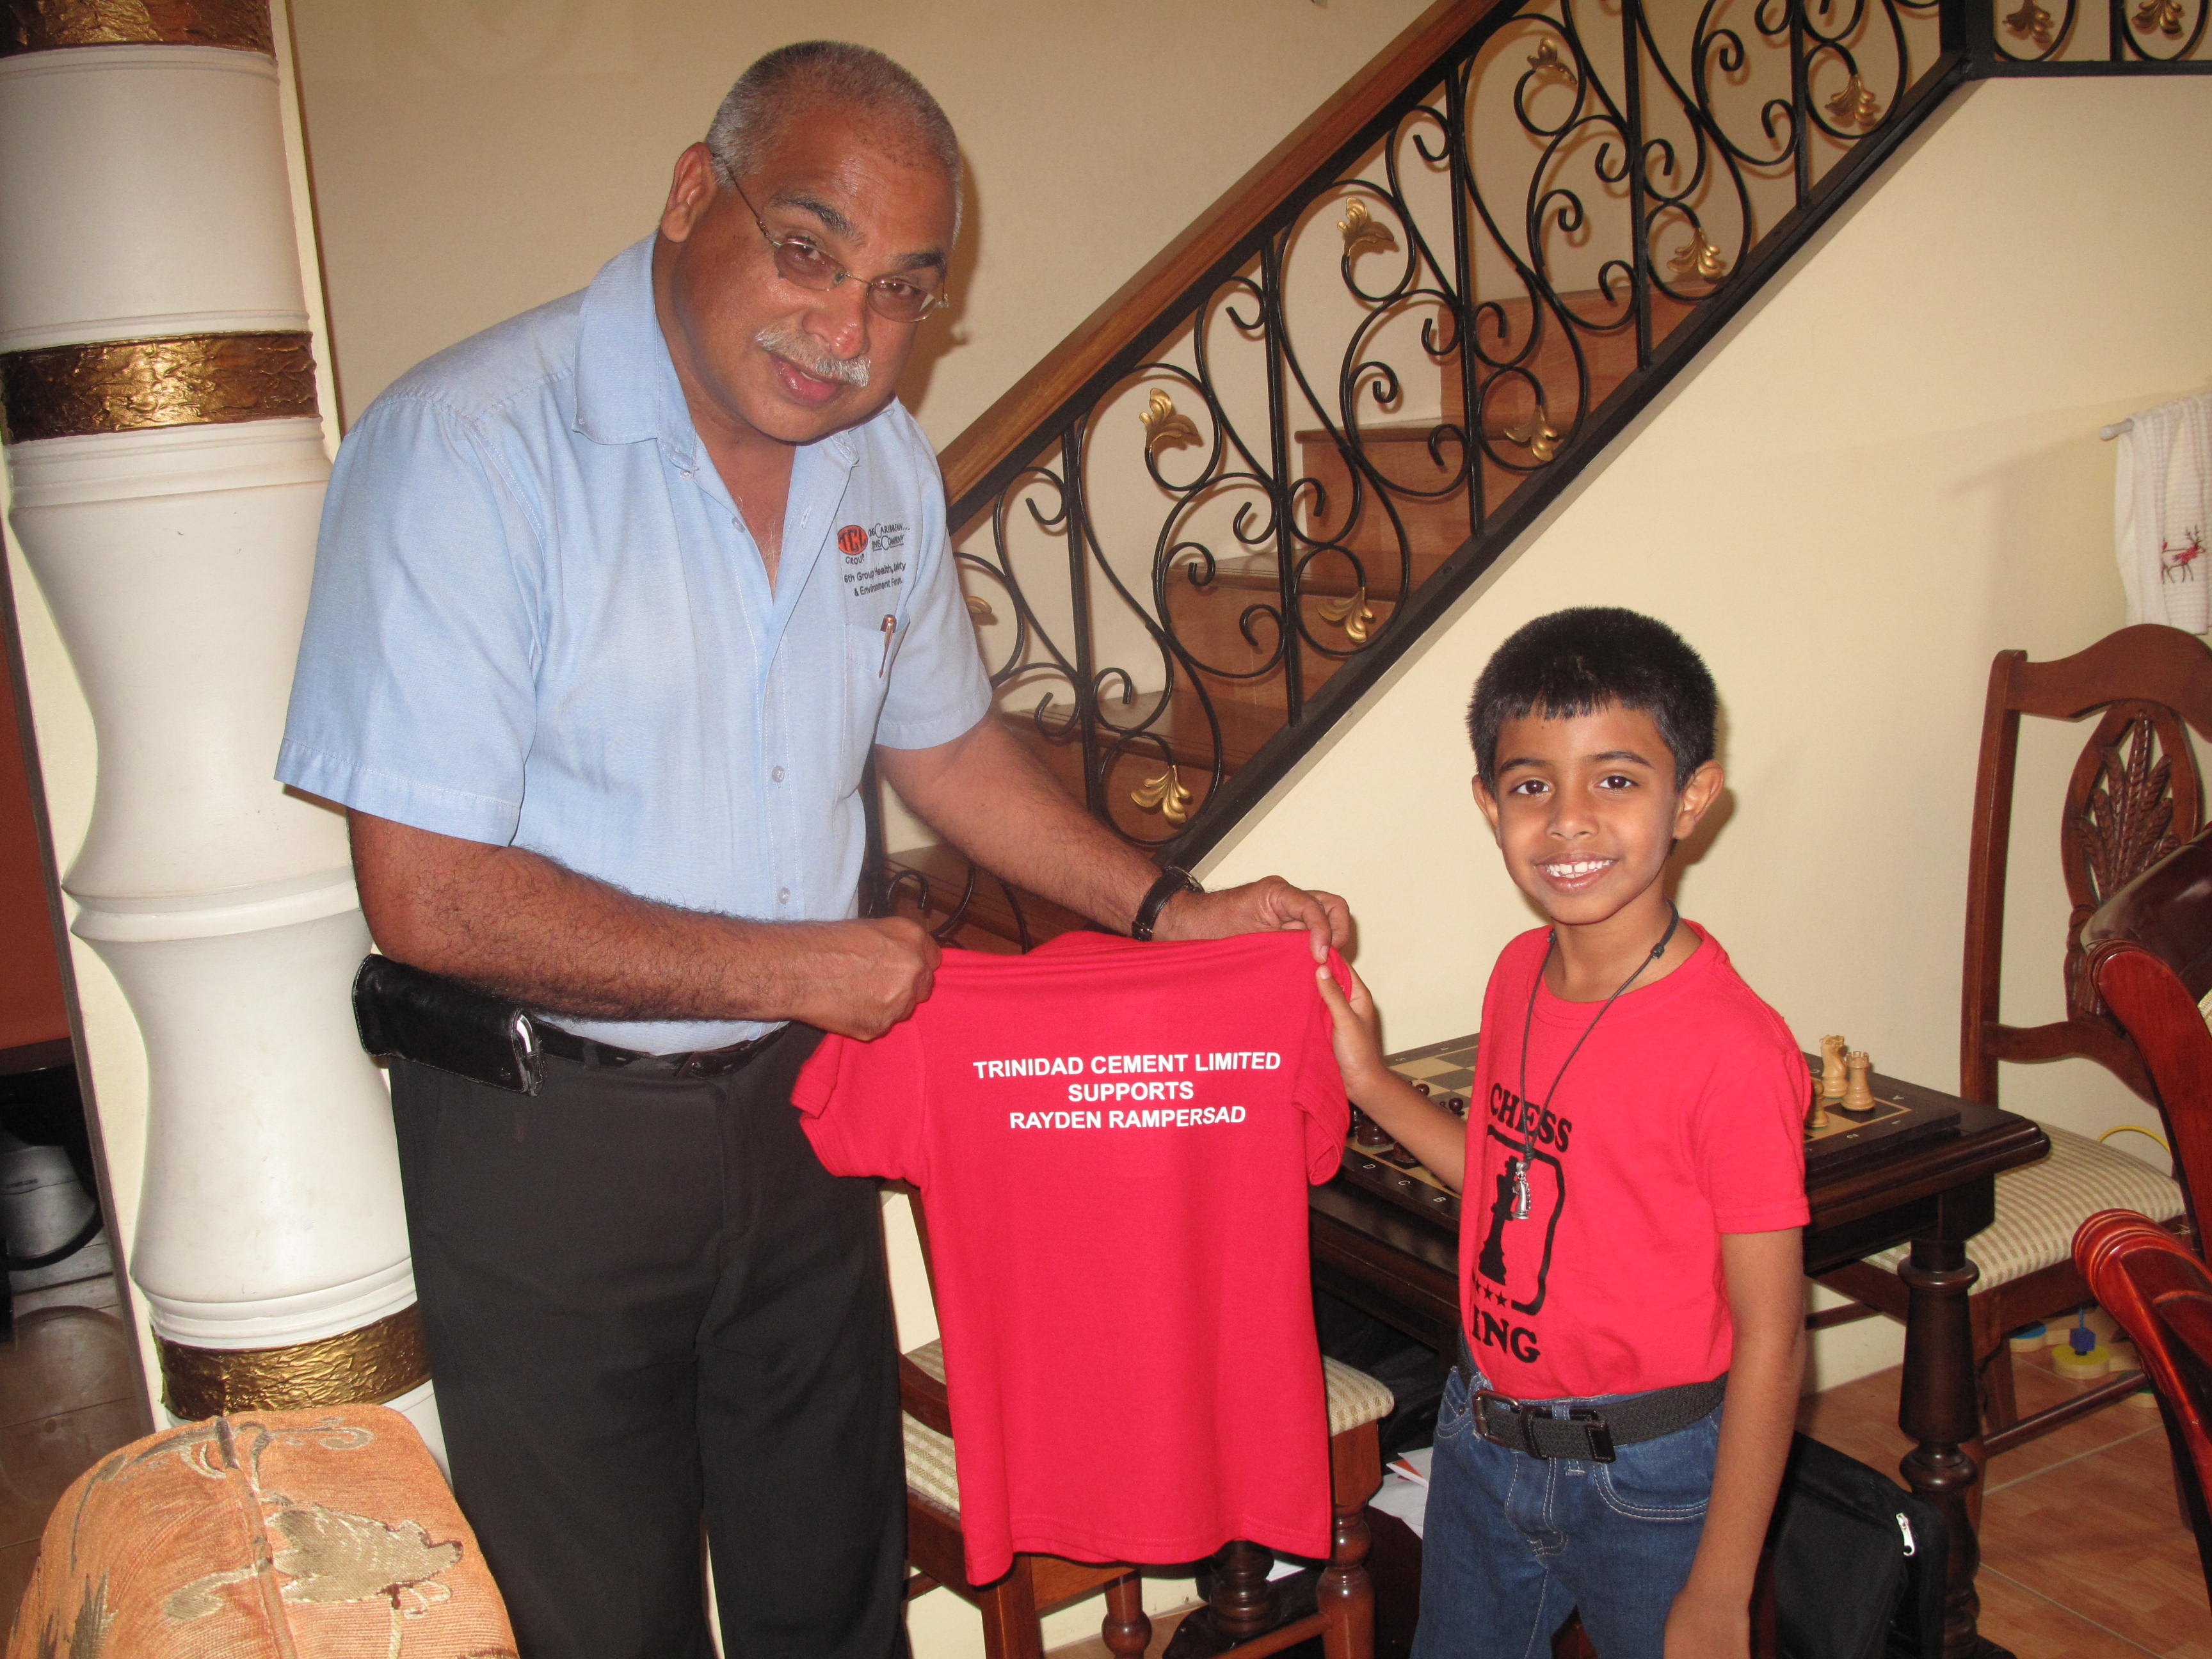 Trinidad Cement Limited's General Manager (Ag.), Jinda Maharaj, with Trinidad and Tobago's Under-8 Chess Champion, Rayden Rampersad.  TCL proudly sponsored Rayden Rampersad's participation in the 2015 CARIFTA Chess Championship.